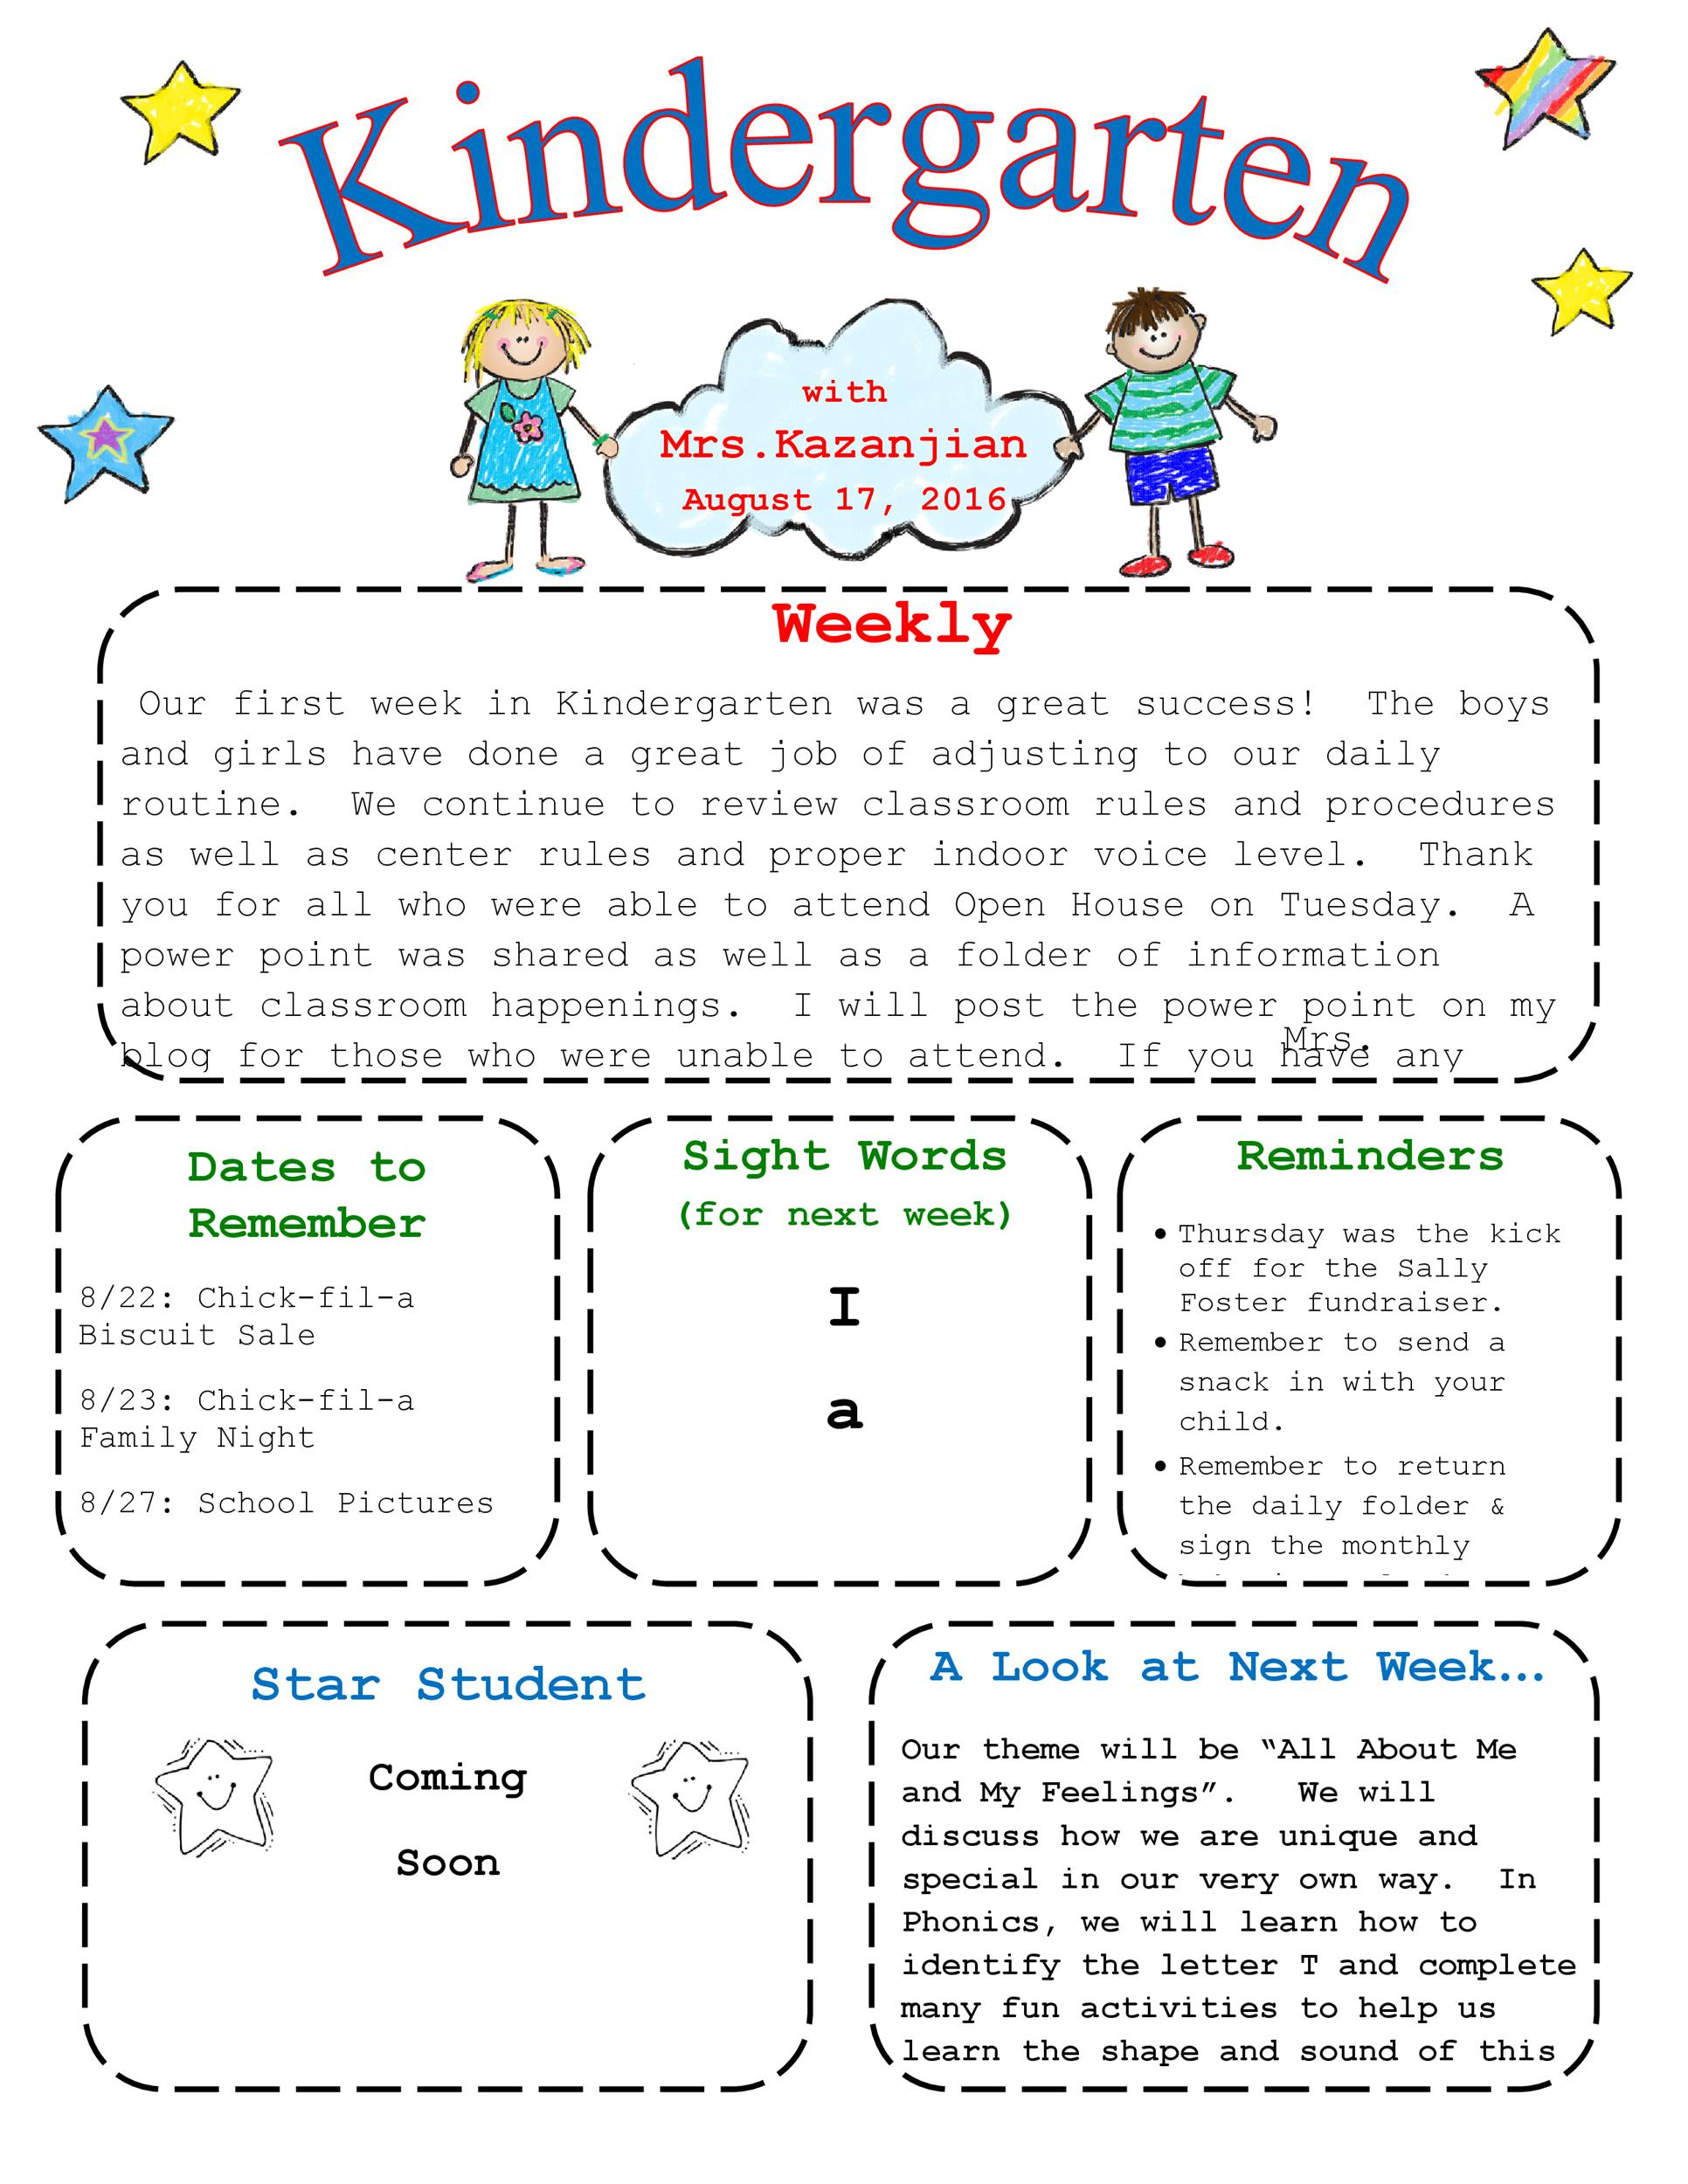 Free weekly and monthly staff newsletter templates for childcare centers. 50 Creative Preschool Newsletter Templates Tips Á… Templatelab